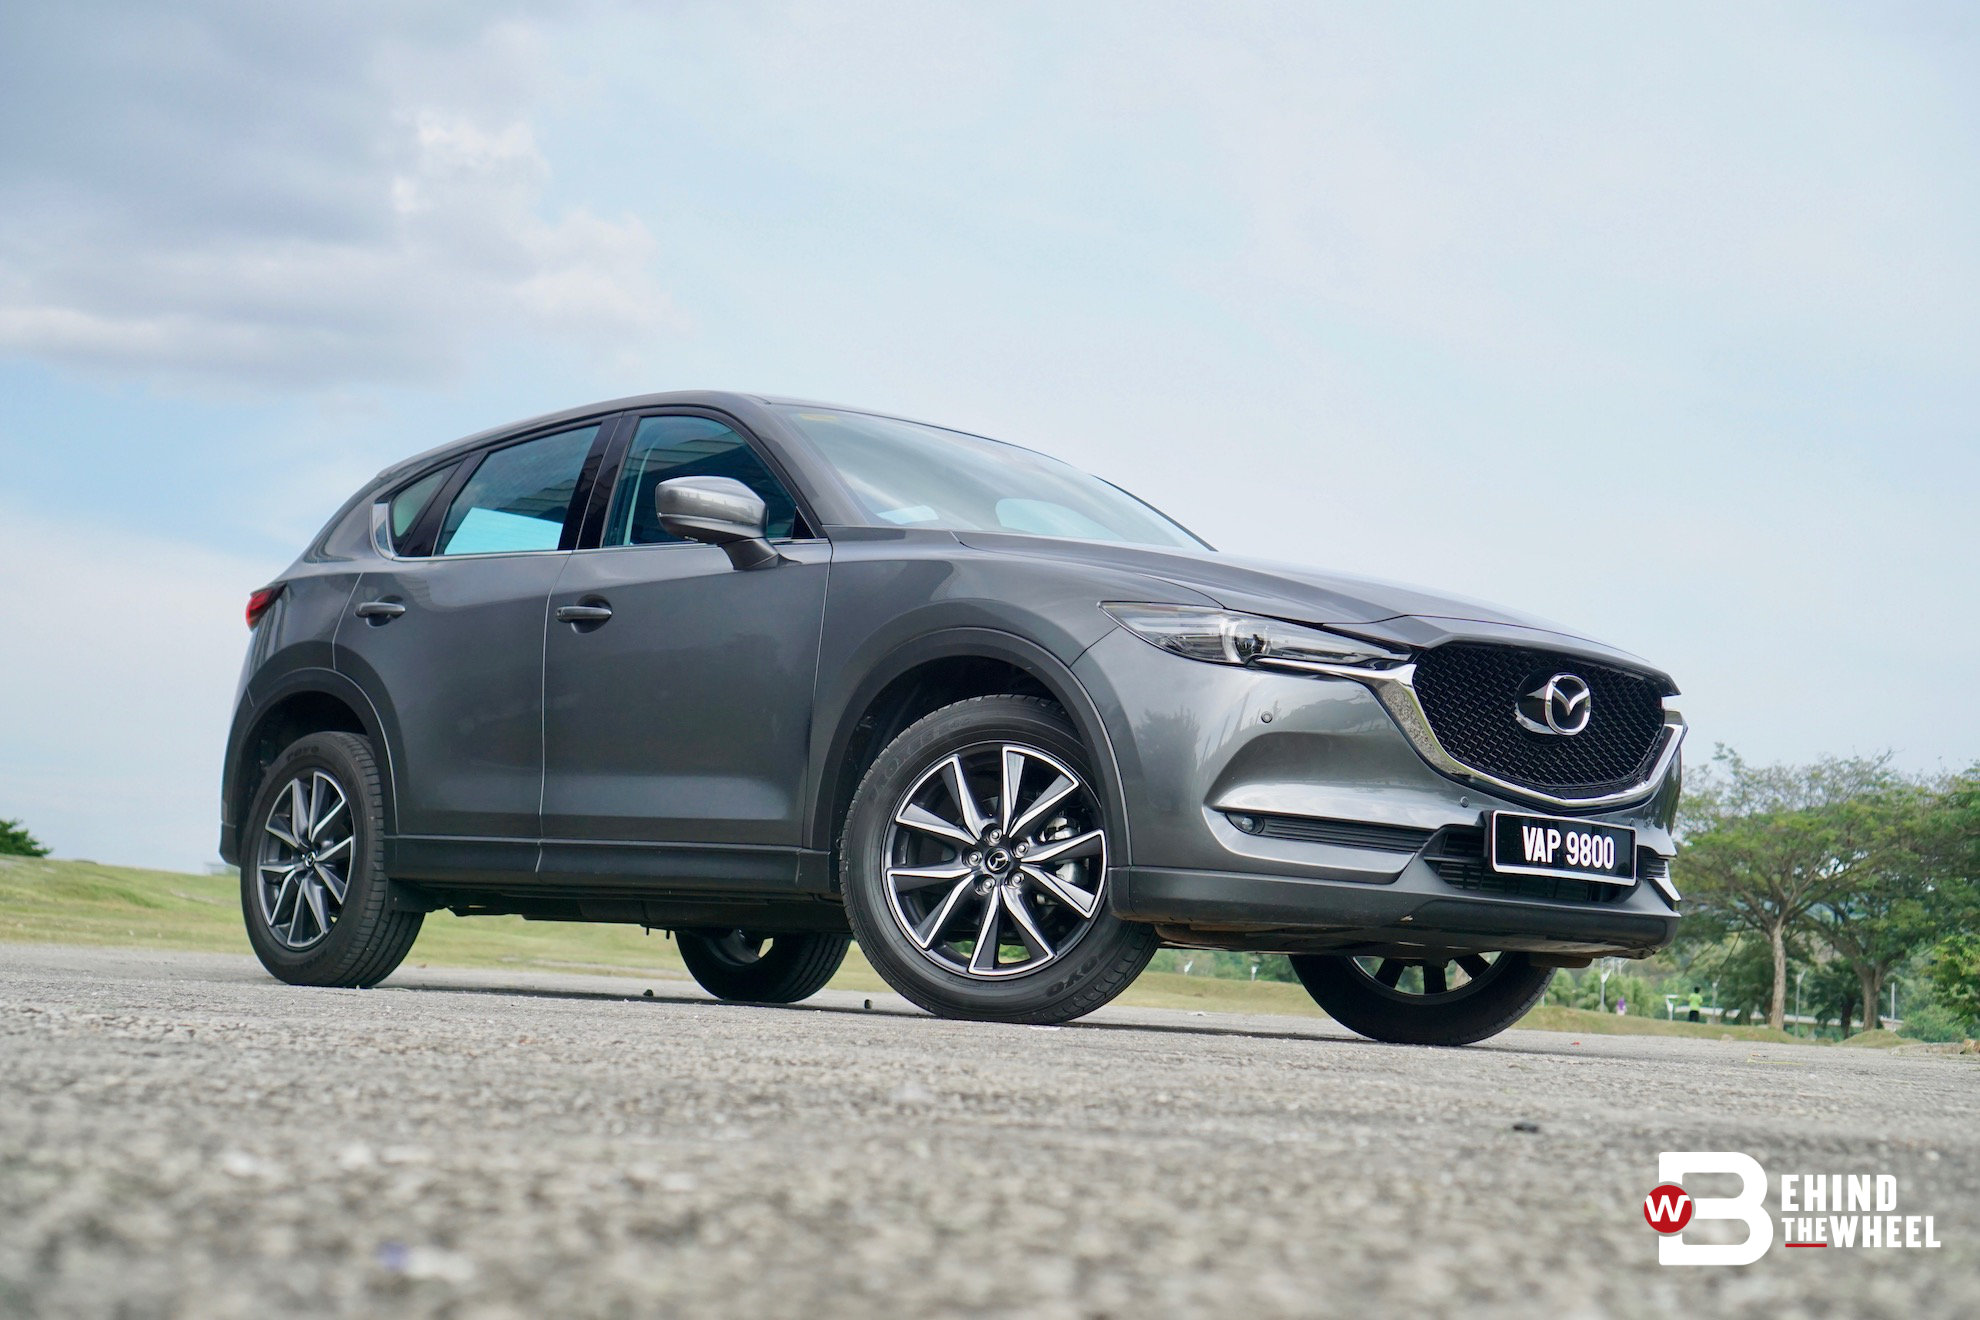 mazda cx 5 gls skyactiv d review the one with everything except the rice cooker